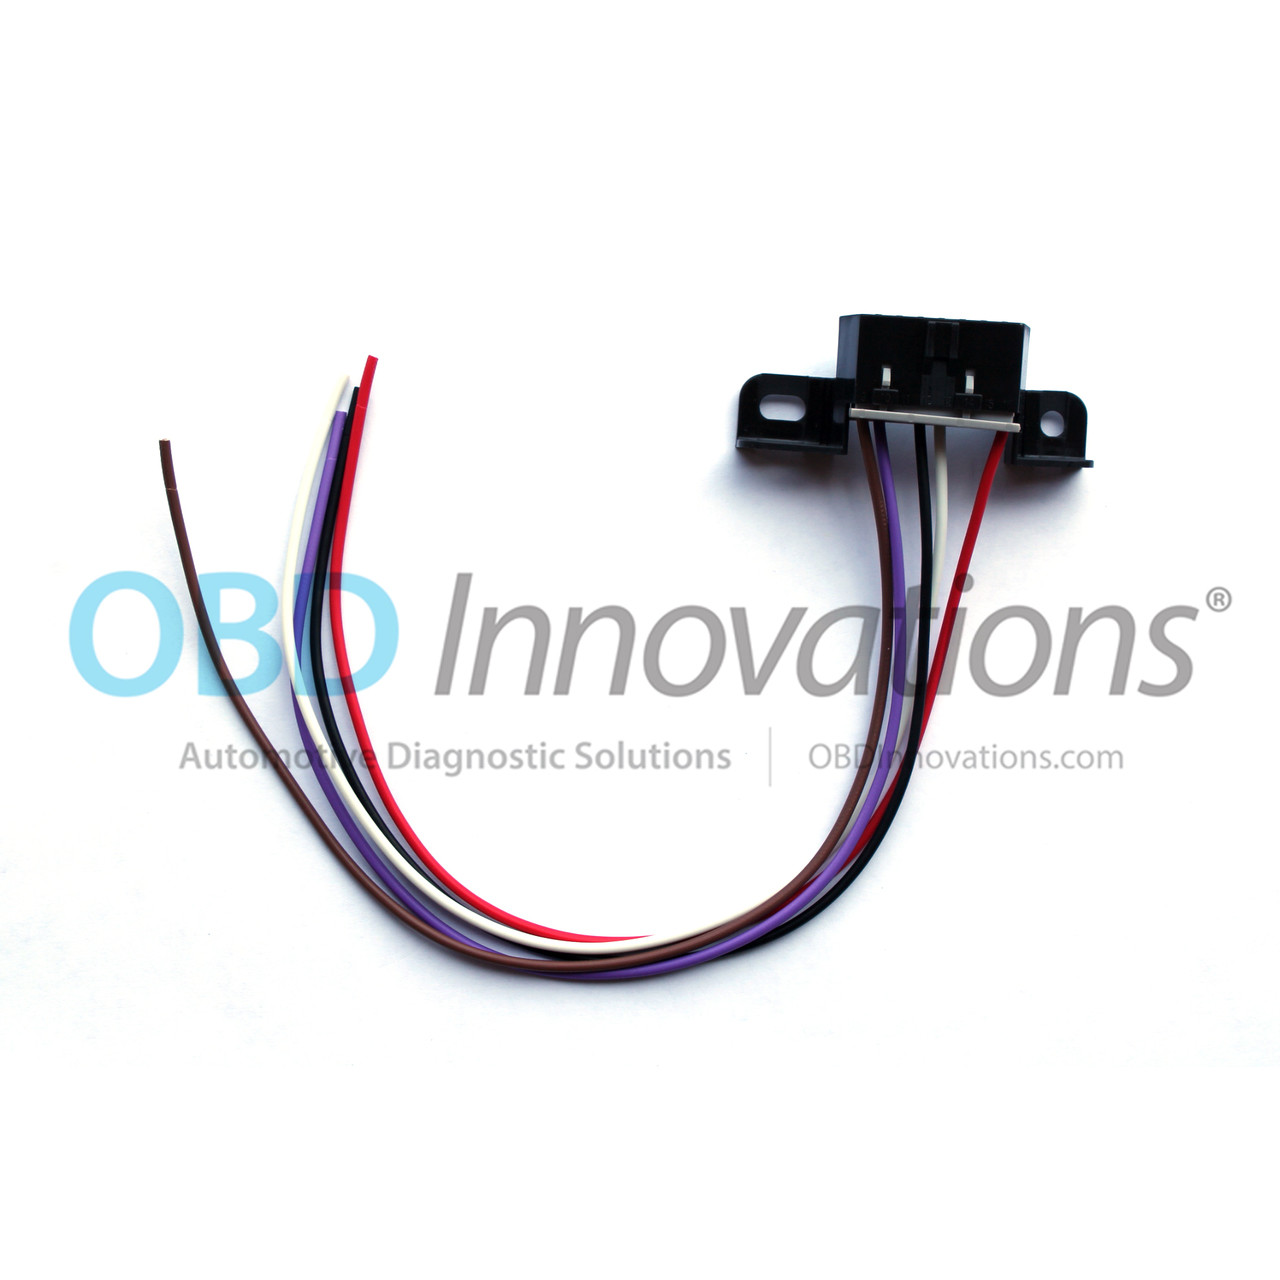 small resolution of obd2 j1962 dlc connector pigtail for gm aldl serial obd innovations gm ls1 lt1 obdii obd2 aldl connector wiring harness pigtail 96 camaro